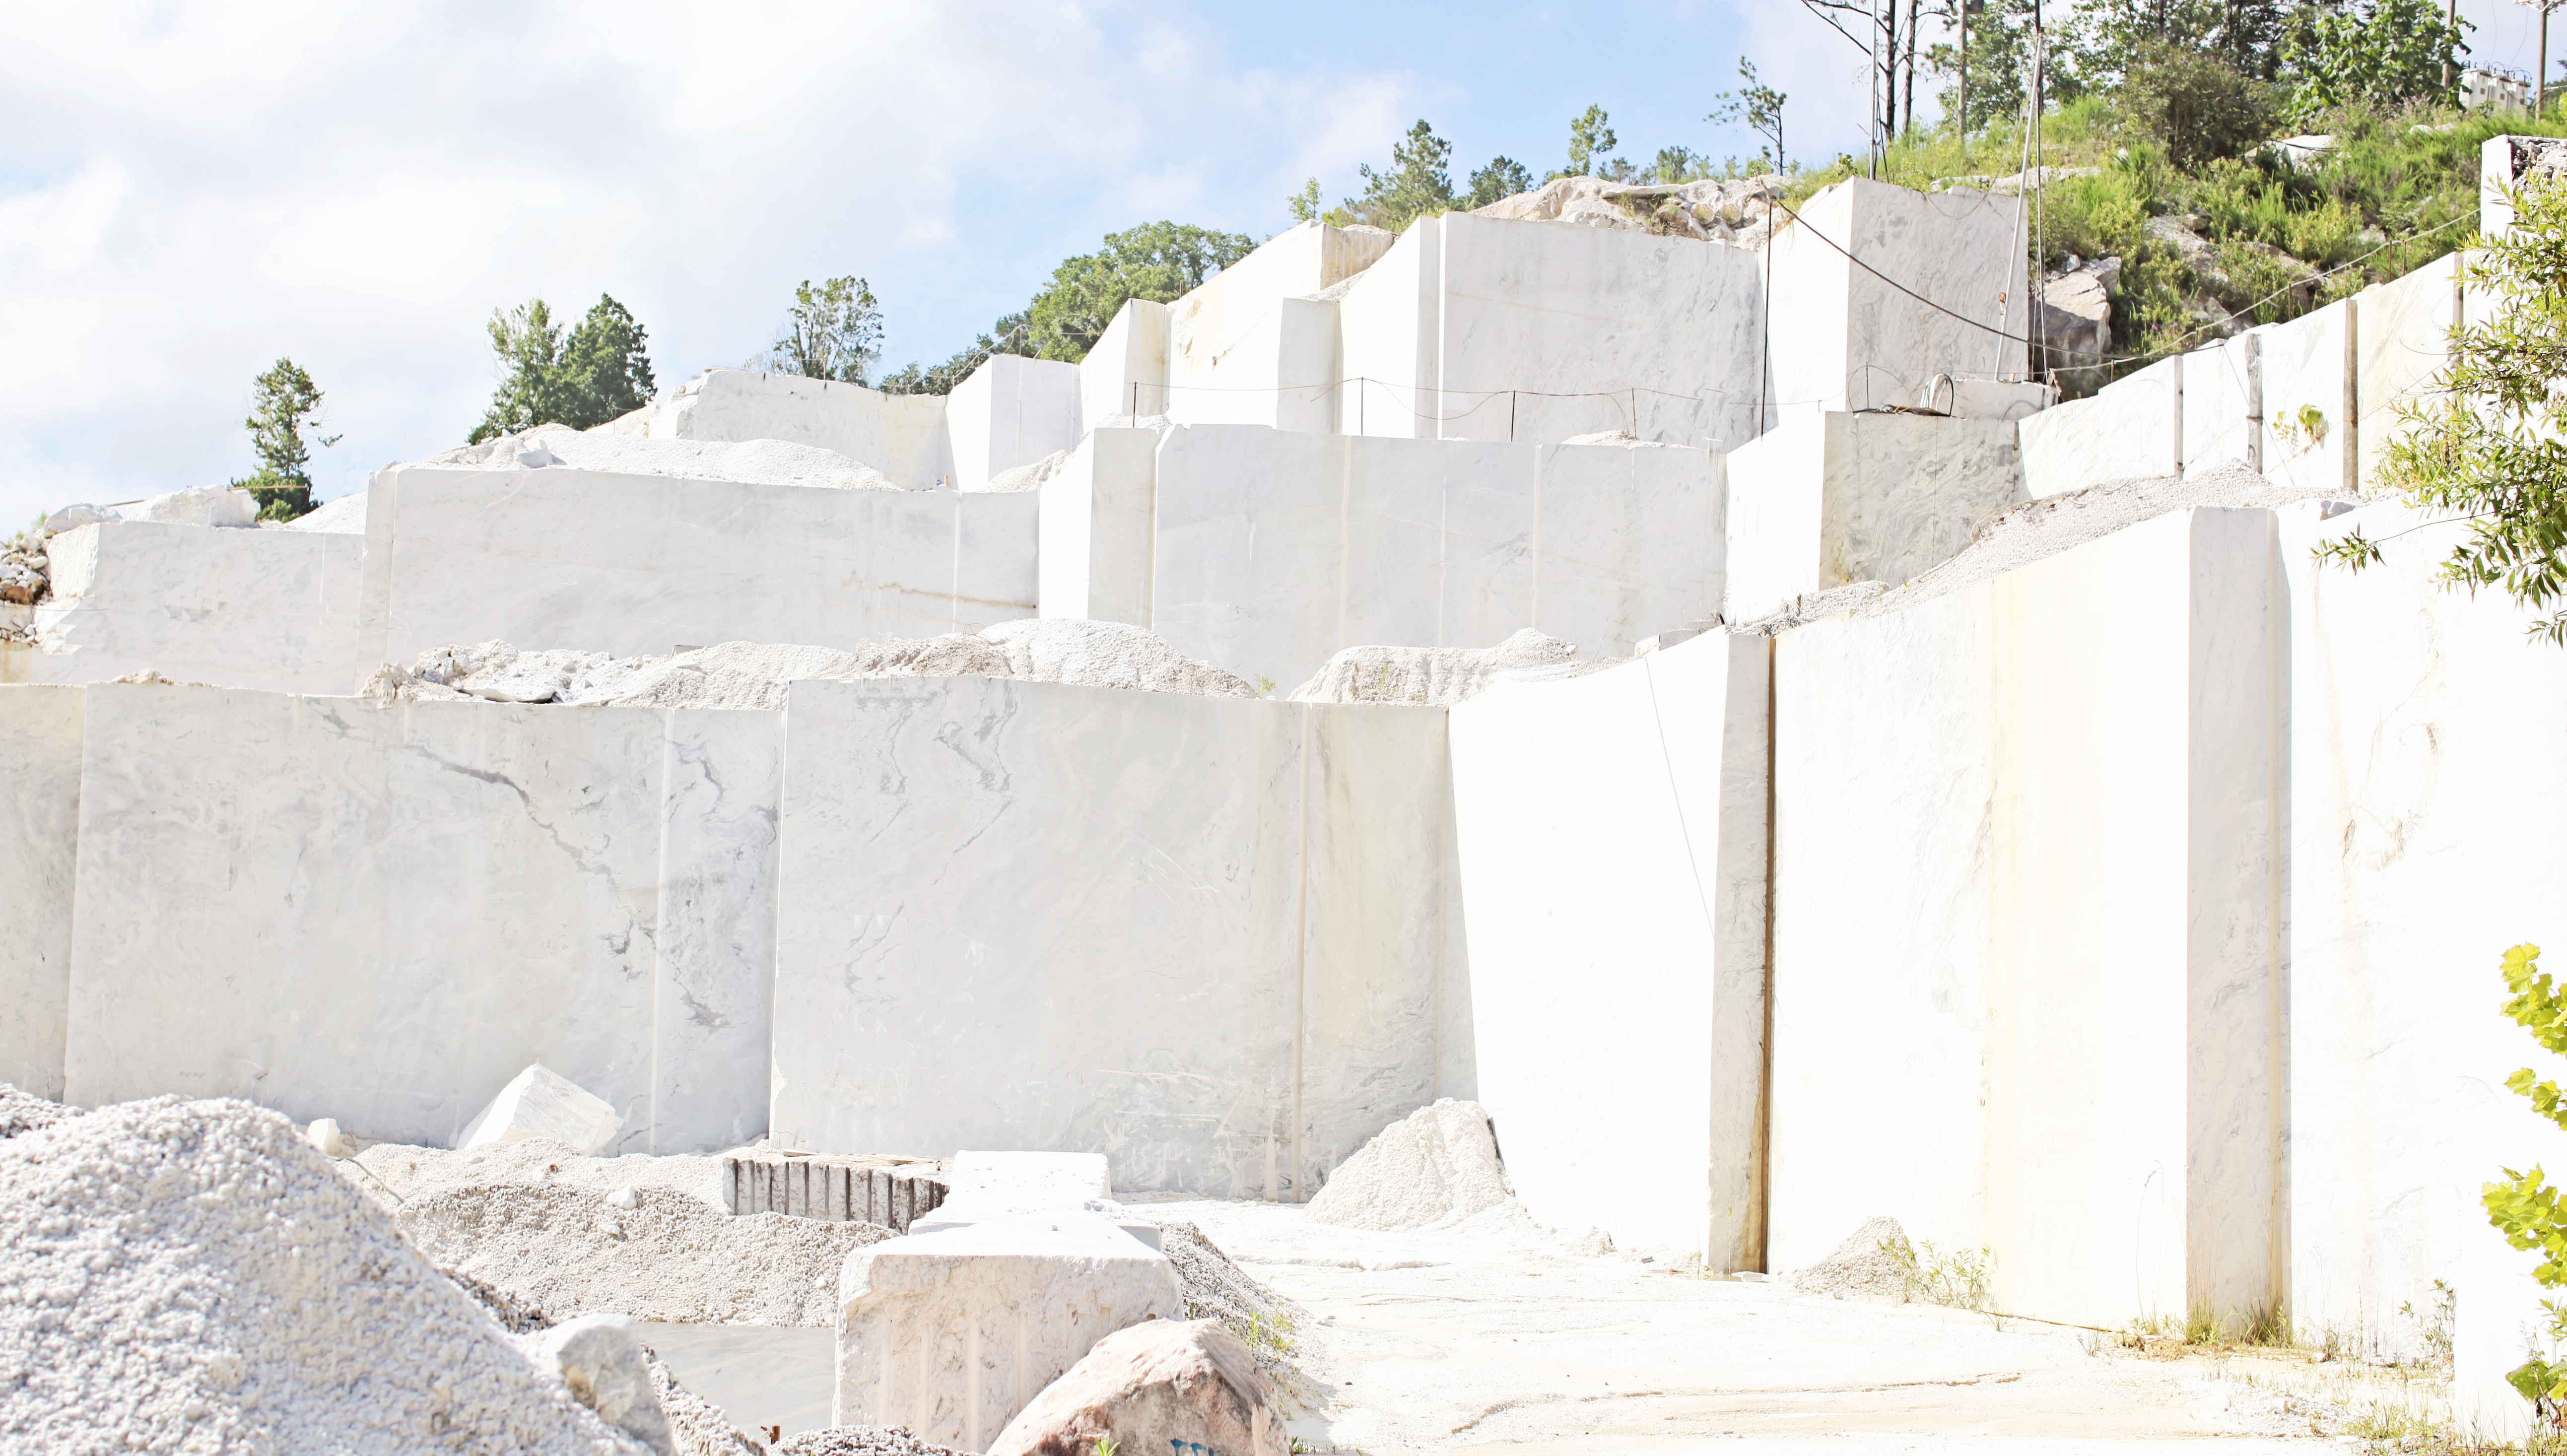 Polycor-zero-waste-Georgia-Marble-Quarry-Tate.jpg